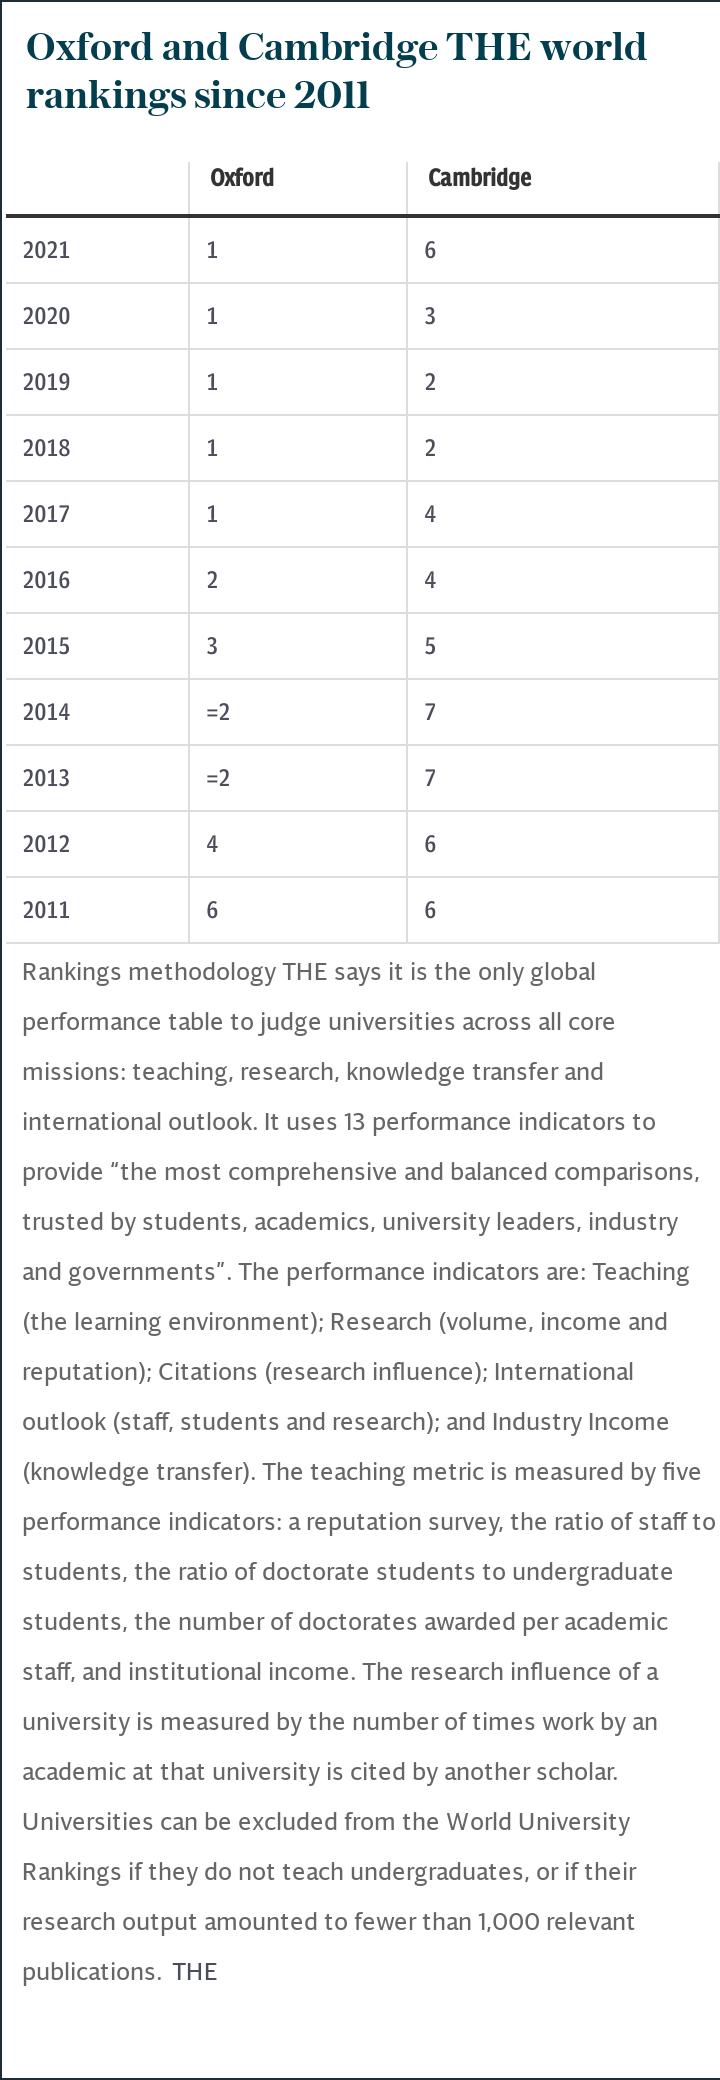 How Oxford and Cambridge have fared in the THE world rankings performance table since 2011